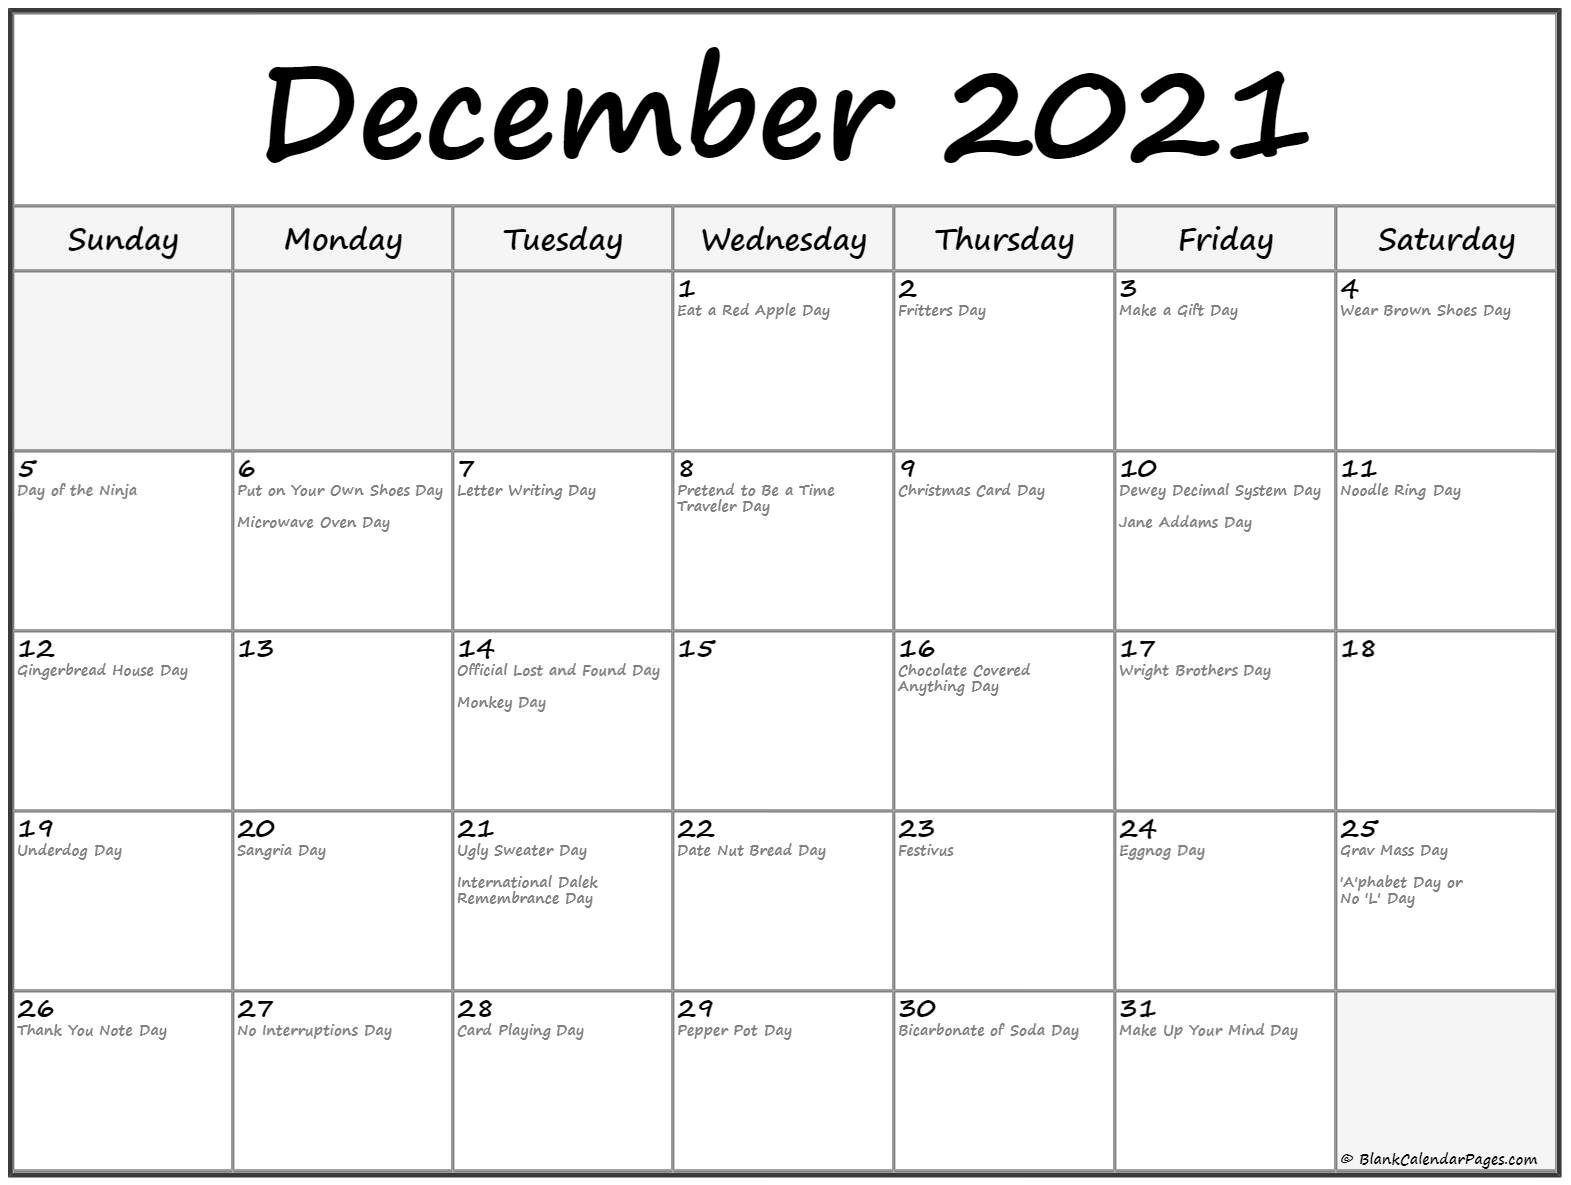 December 2019 calendar with funny holidays